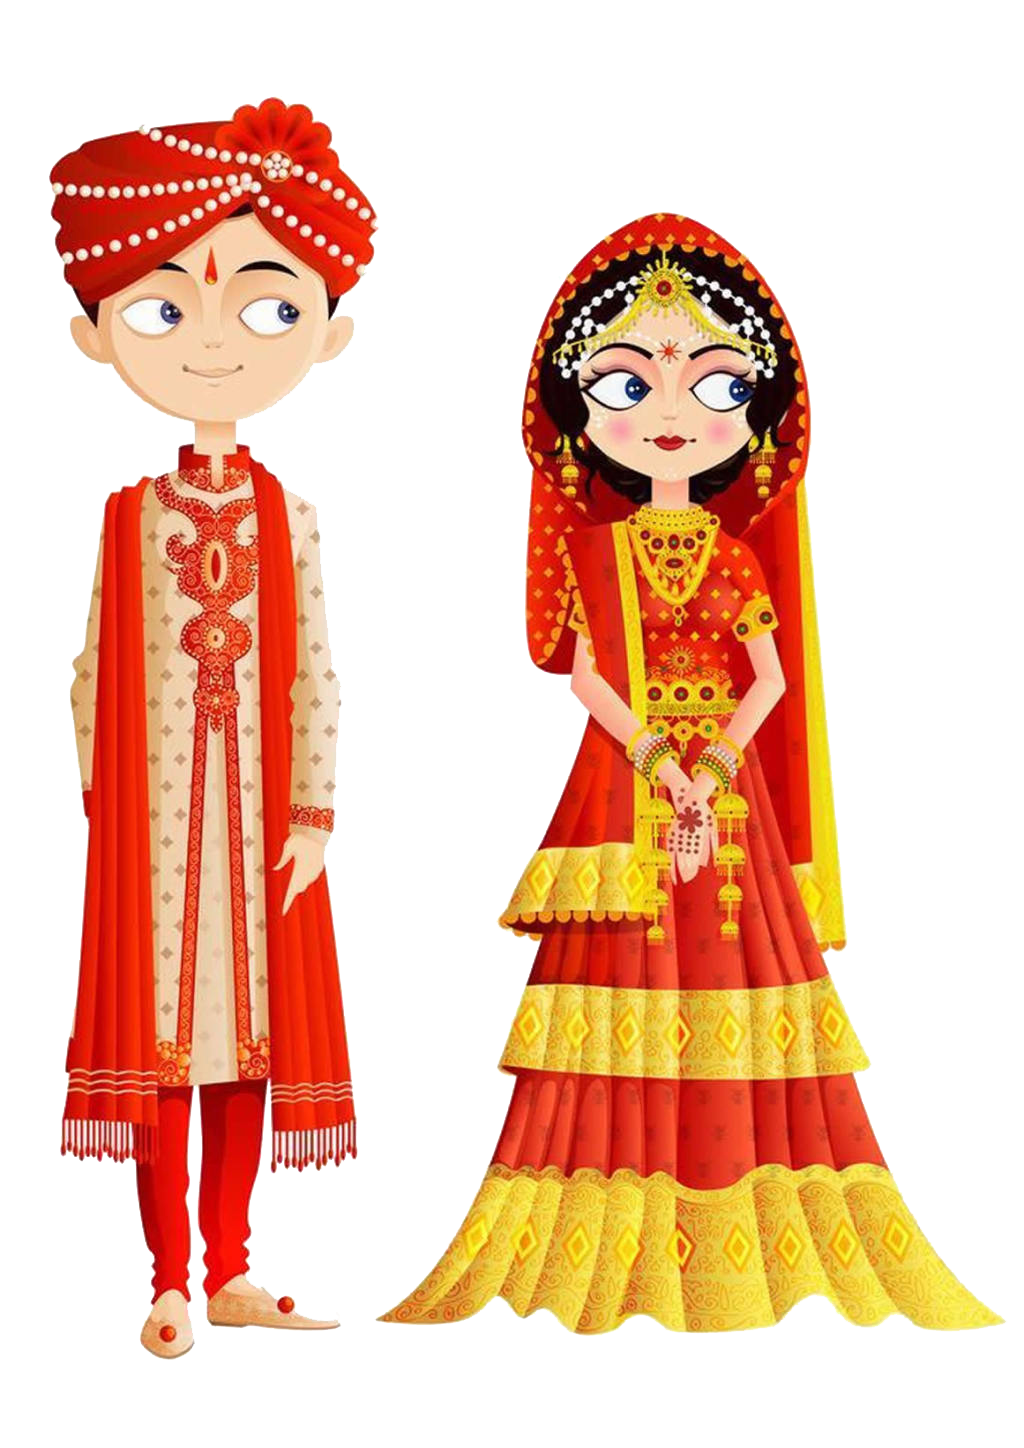 Indian wedding clipart png. India invitation bride clip